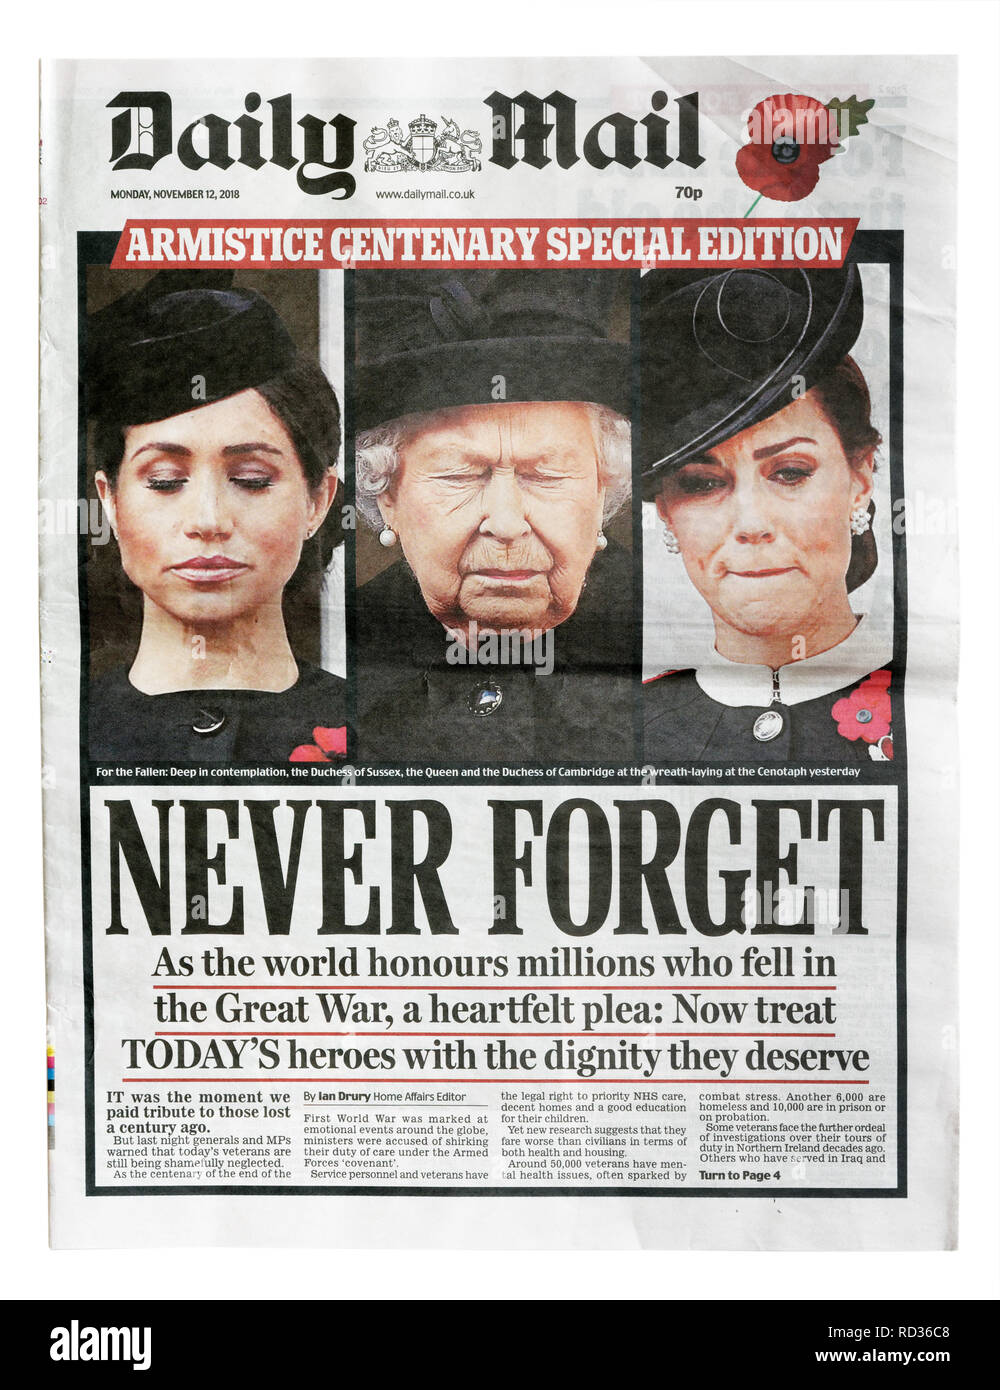 The front page of the Daily Mail from November 12 with the headline Never Forget, about the celebration of 100 years after the armistice - Stock Image